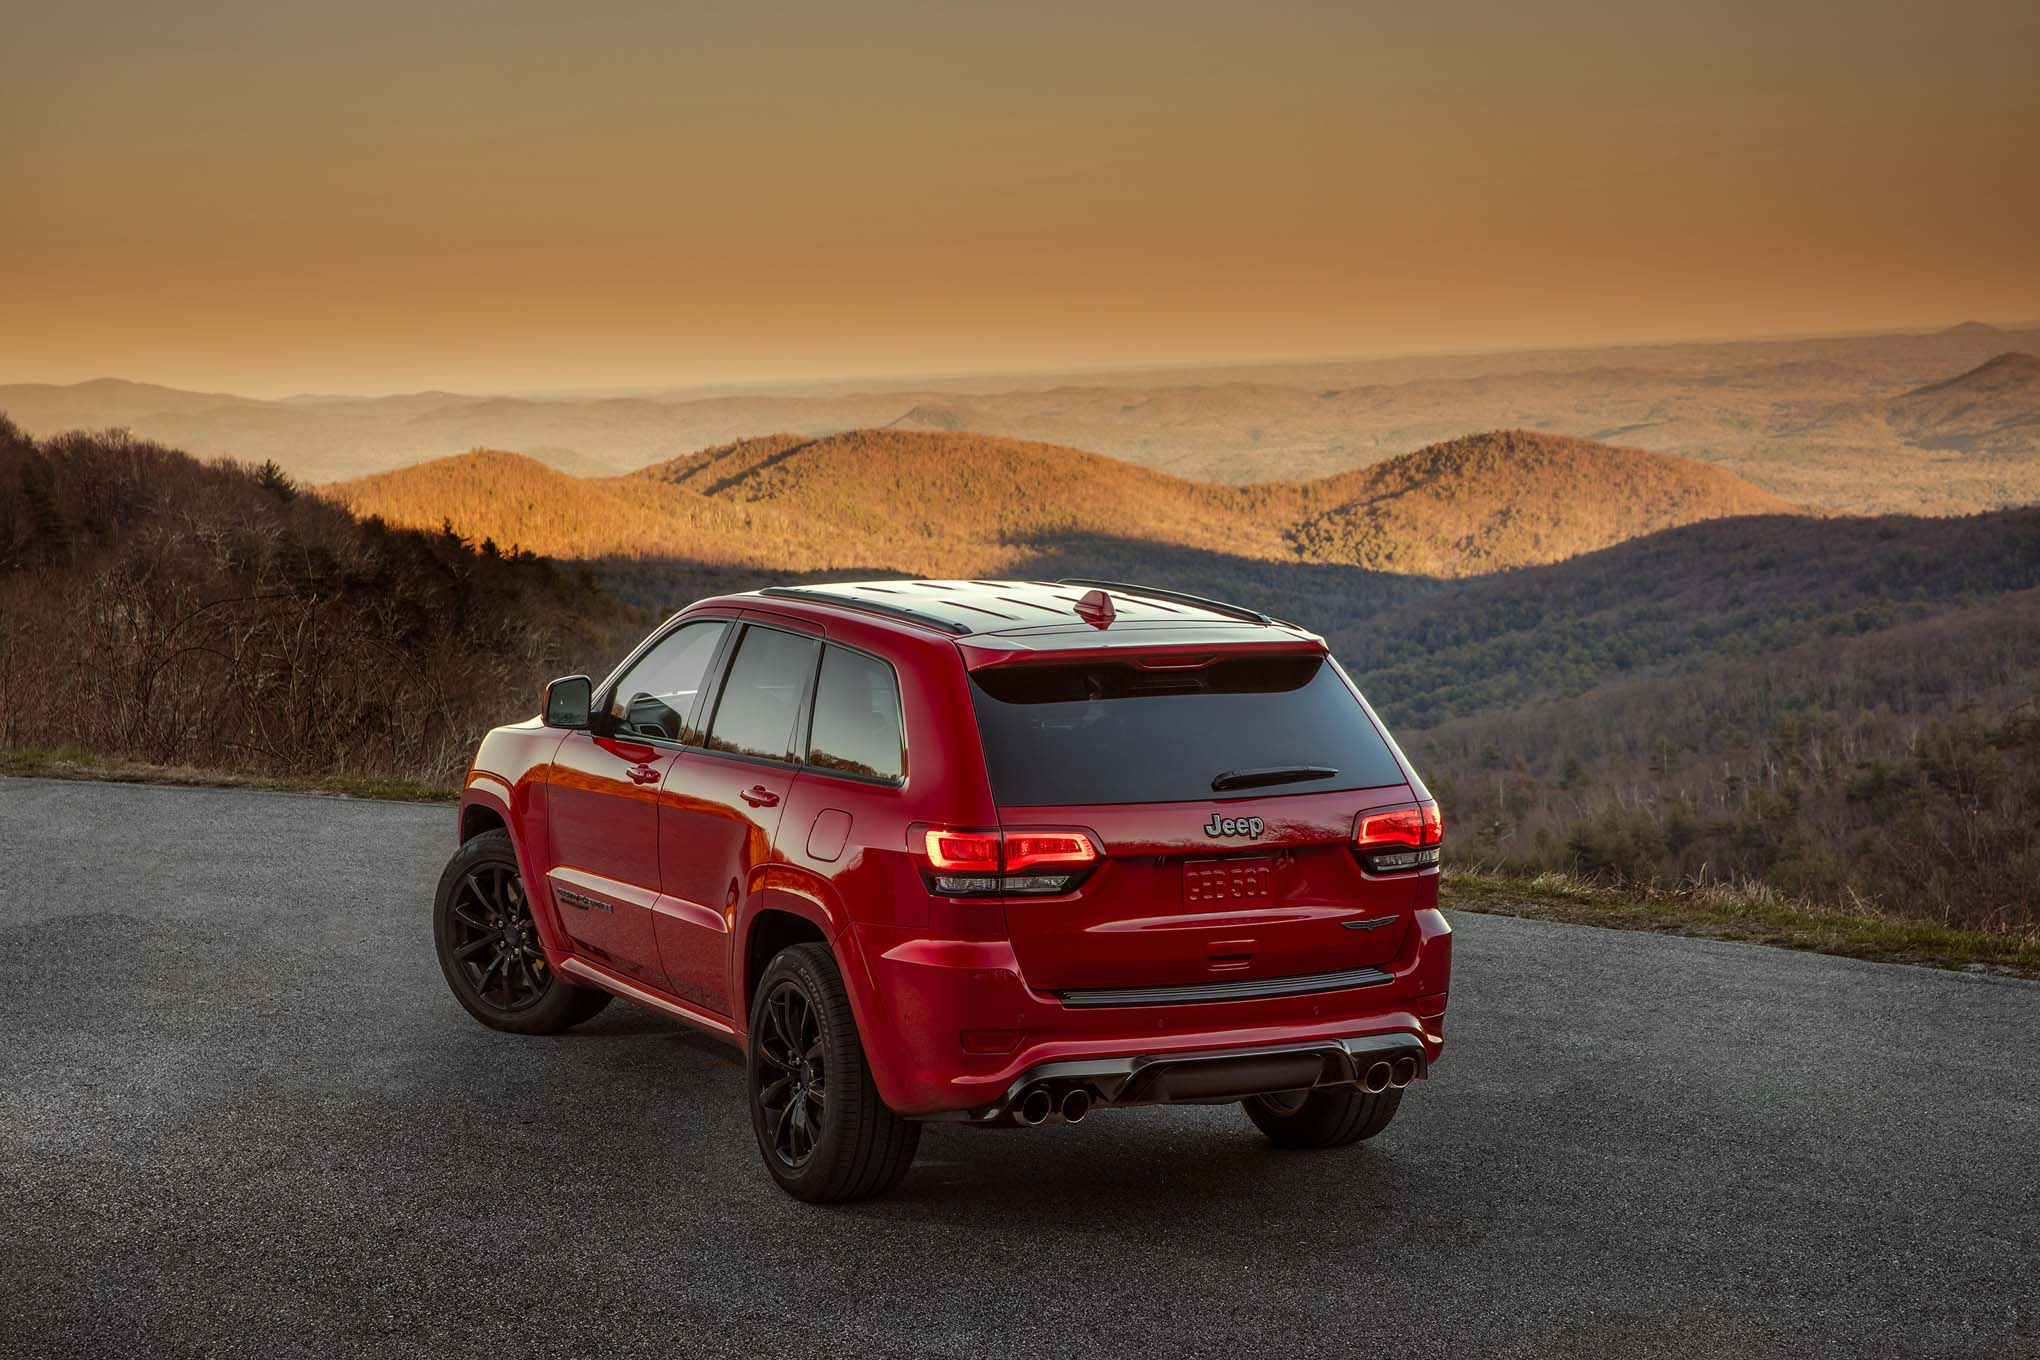 2018 jeep grand cherokee trackhawk pricing announced automobile magazine. Black Bedroom Furniture Sets. Home Design Ideas